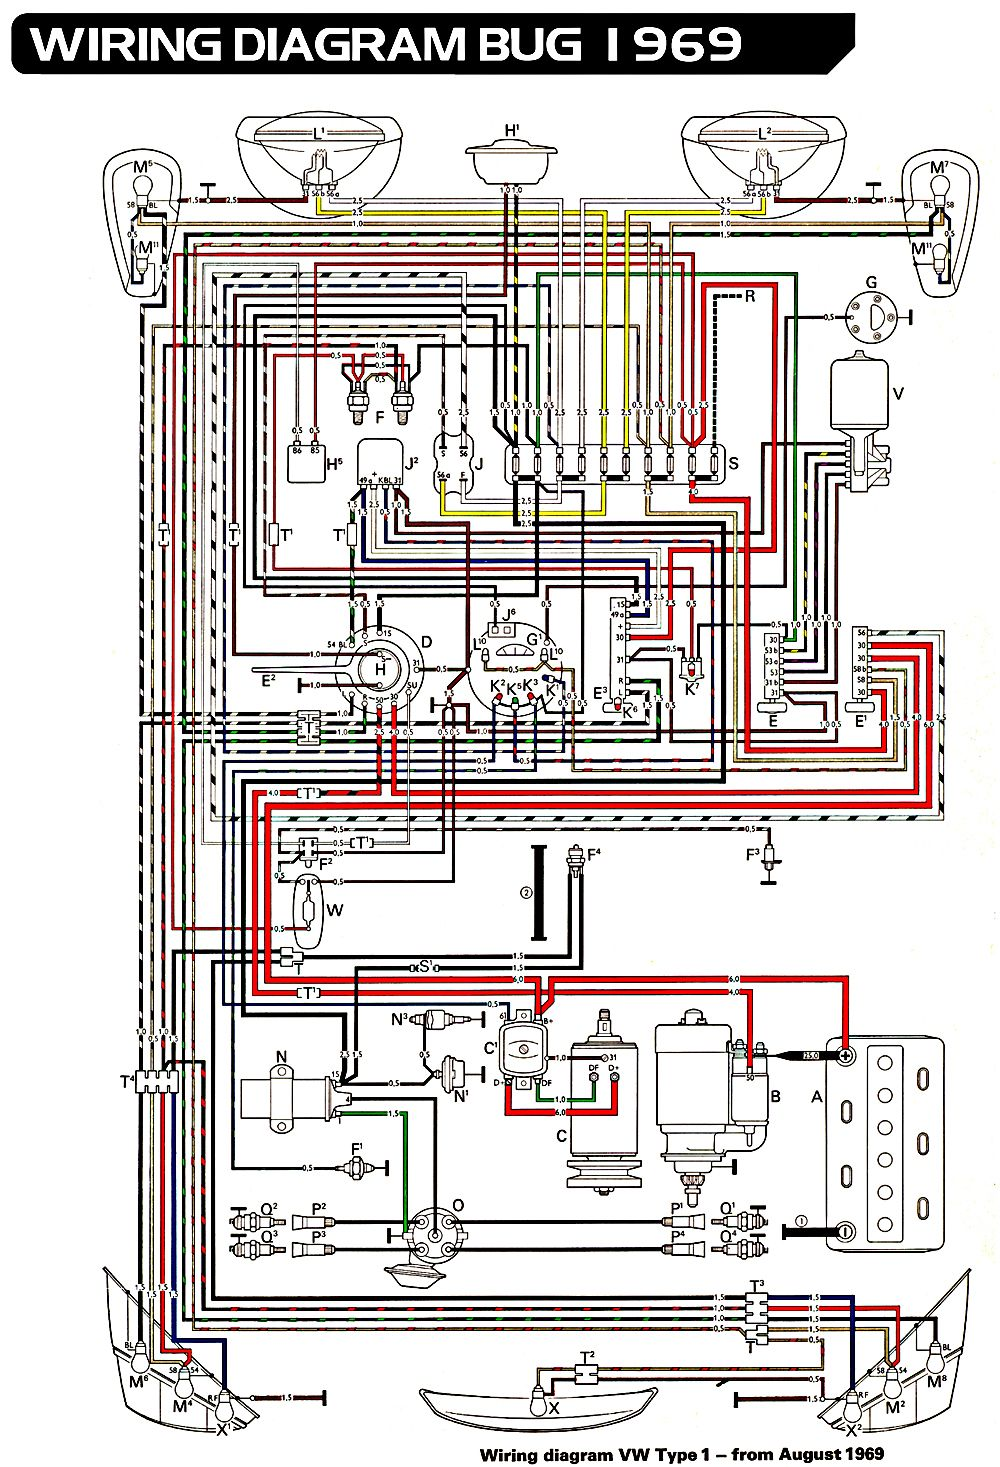 6d75c15875479254f26a32a8499d9044 volkswagen beetle wiring diagram 1966 vw beetle wiring vw bug wiring diagram at bayanpartner.co